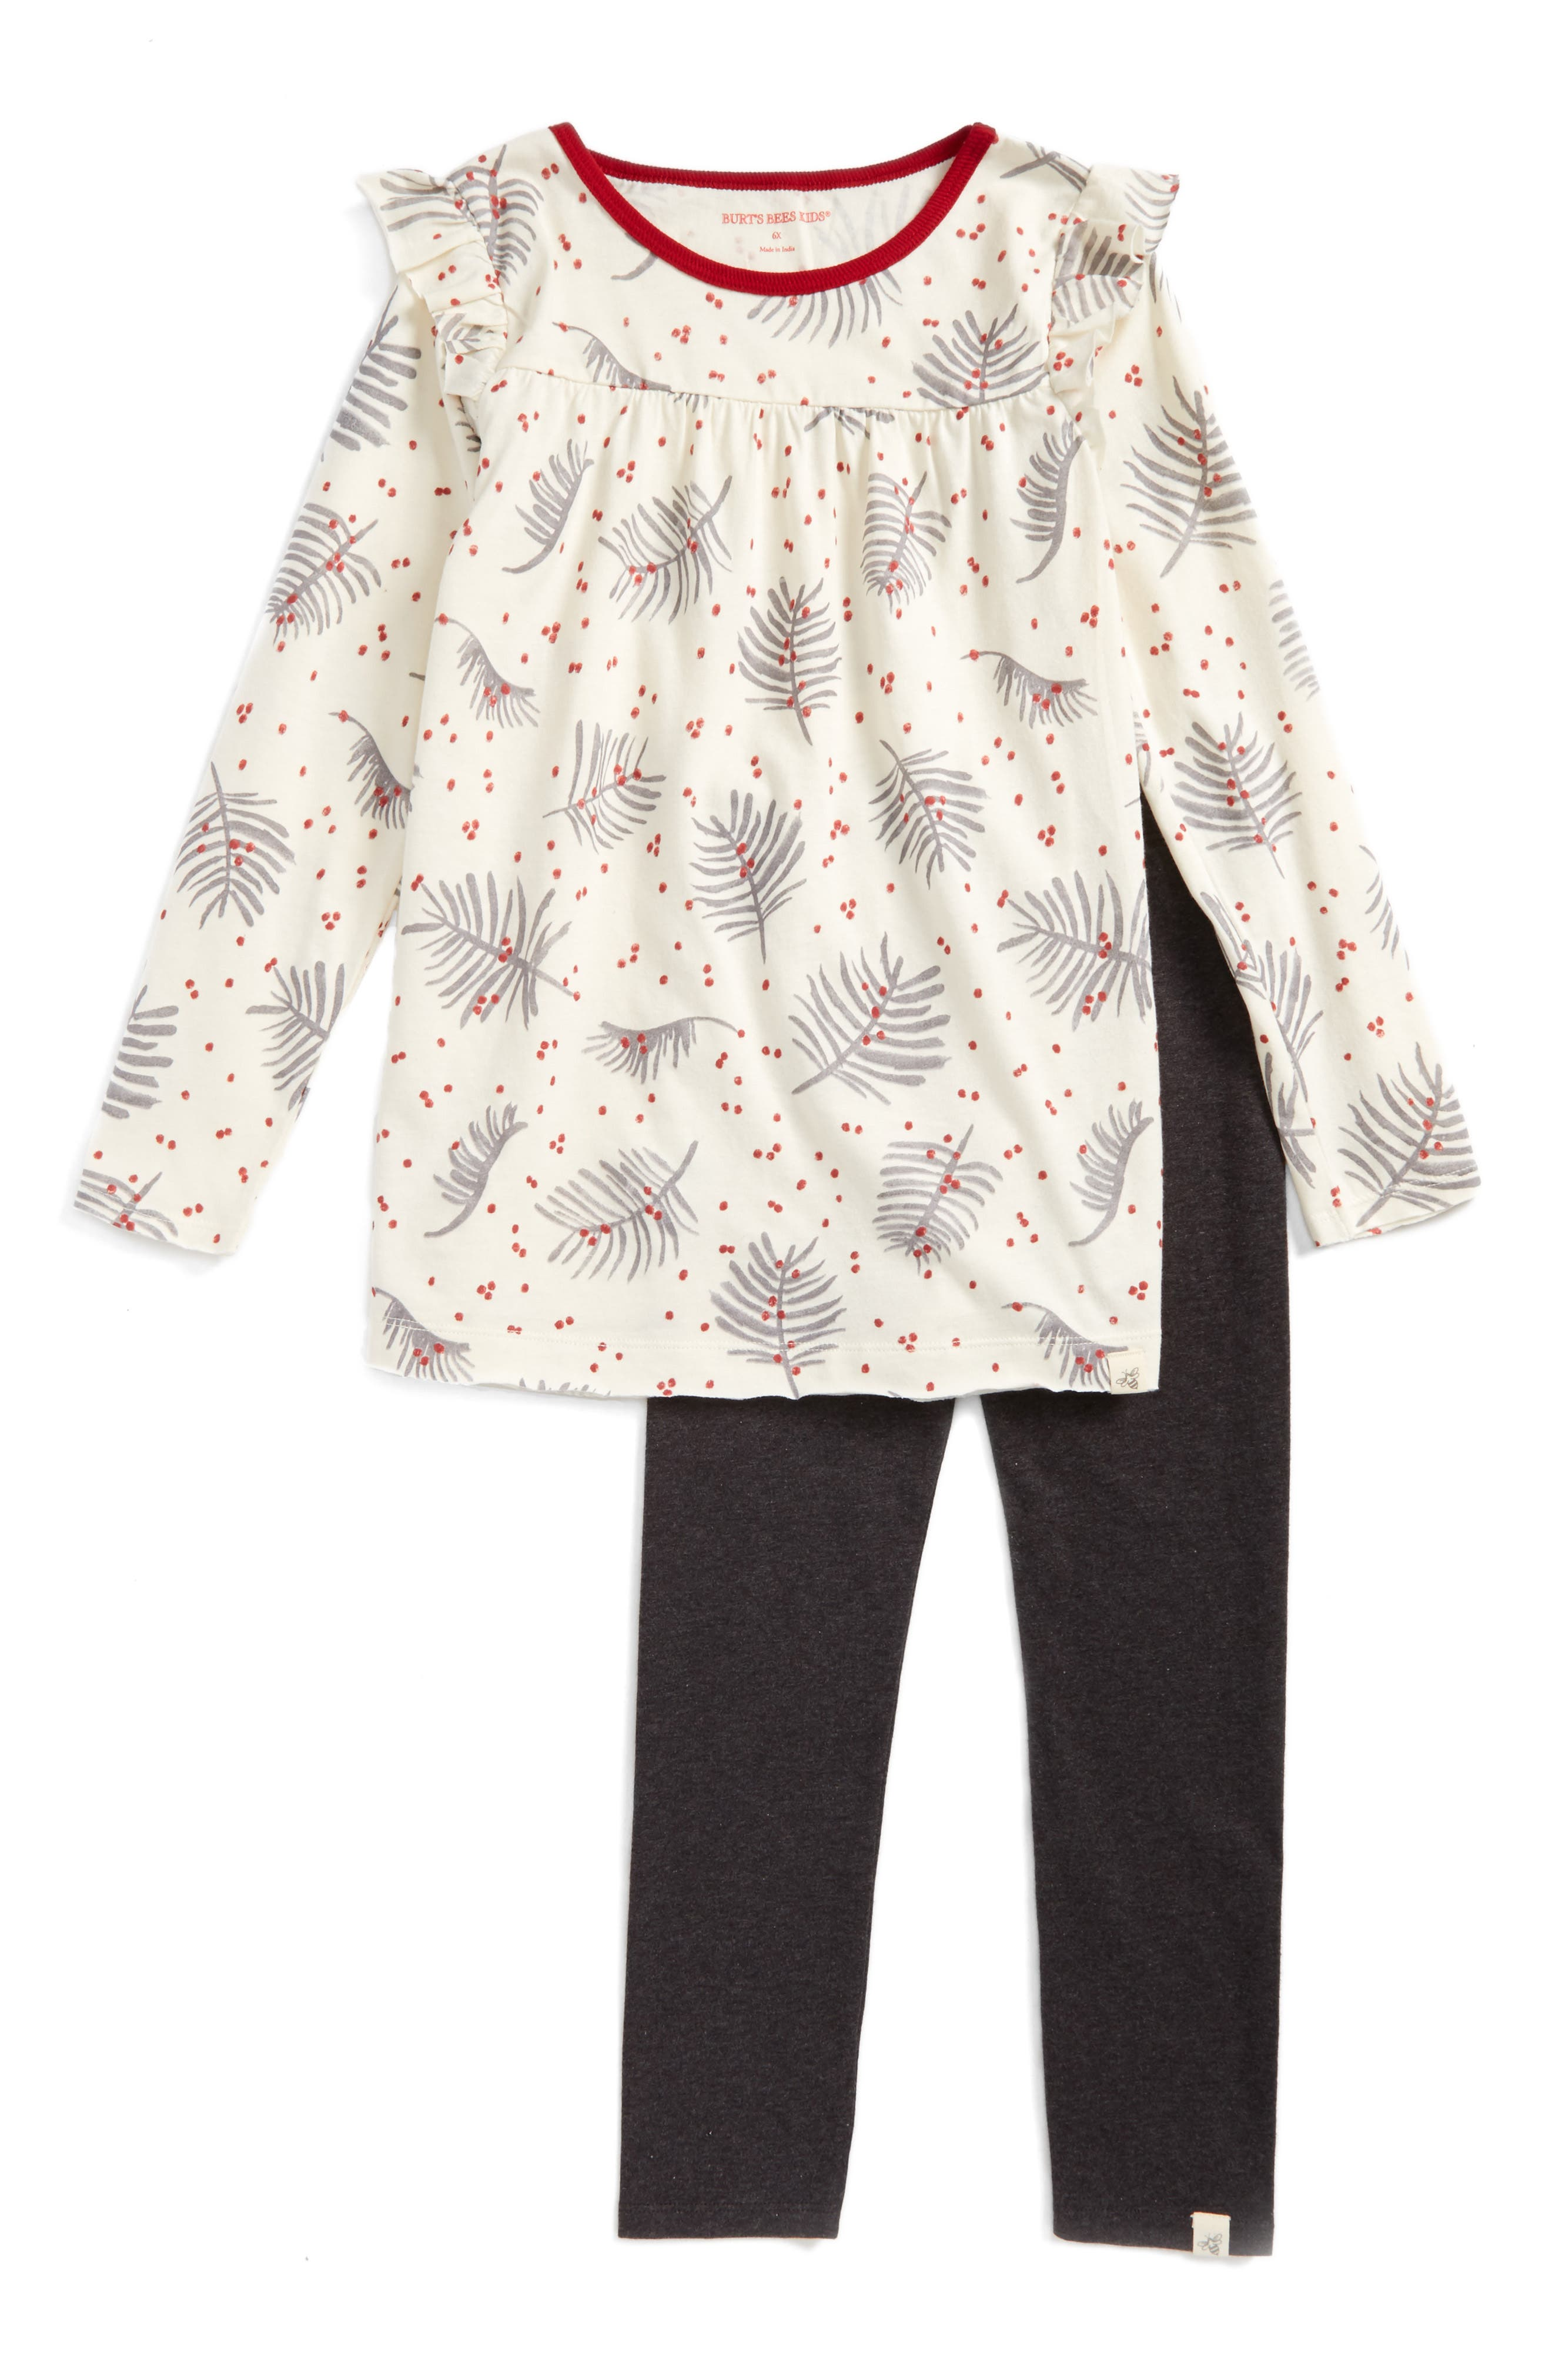 Burt's Bees Baby Pine Leaves Organic Cotton Tunic & Legging Set (Toddler Girls & Little Girls)